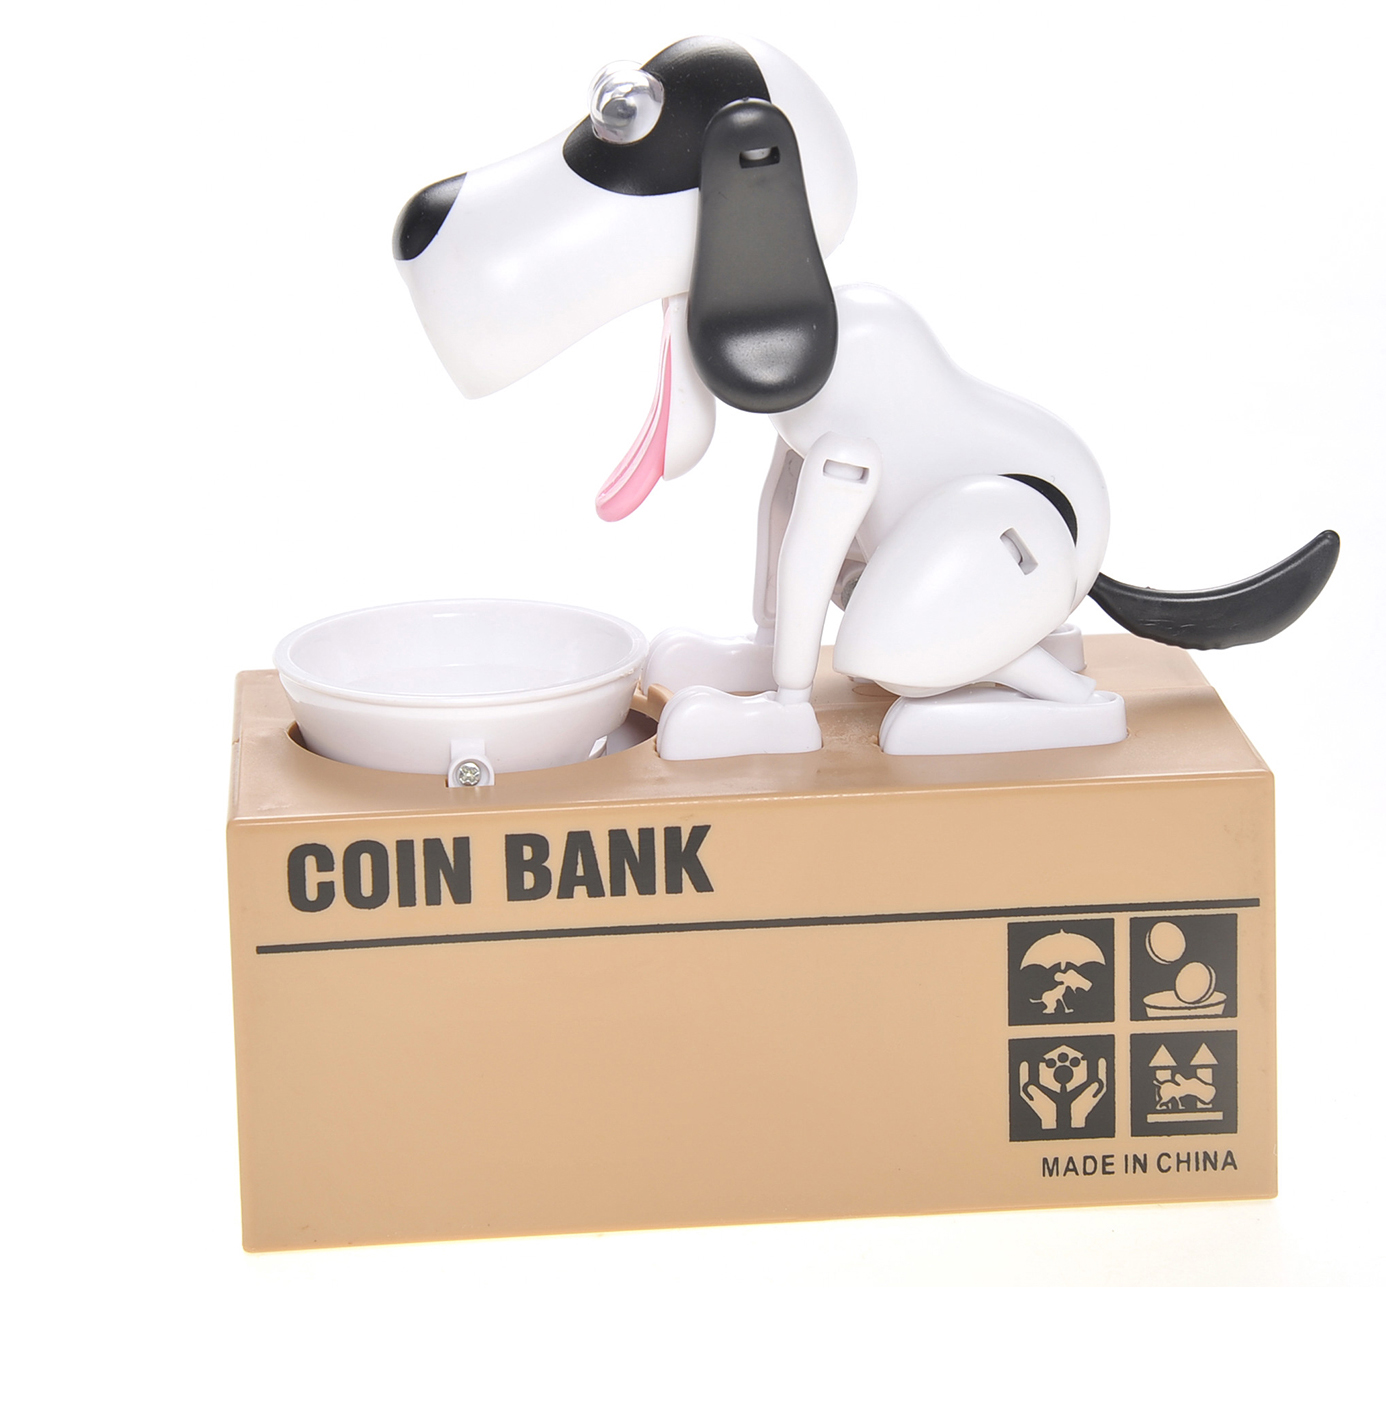 M&M Gifts MPT801 WBLK Toy My Dog Automatic Bank - White Black